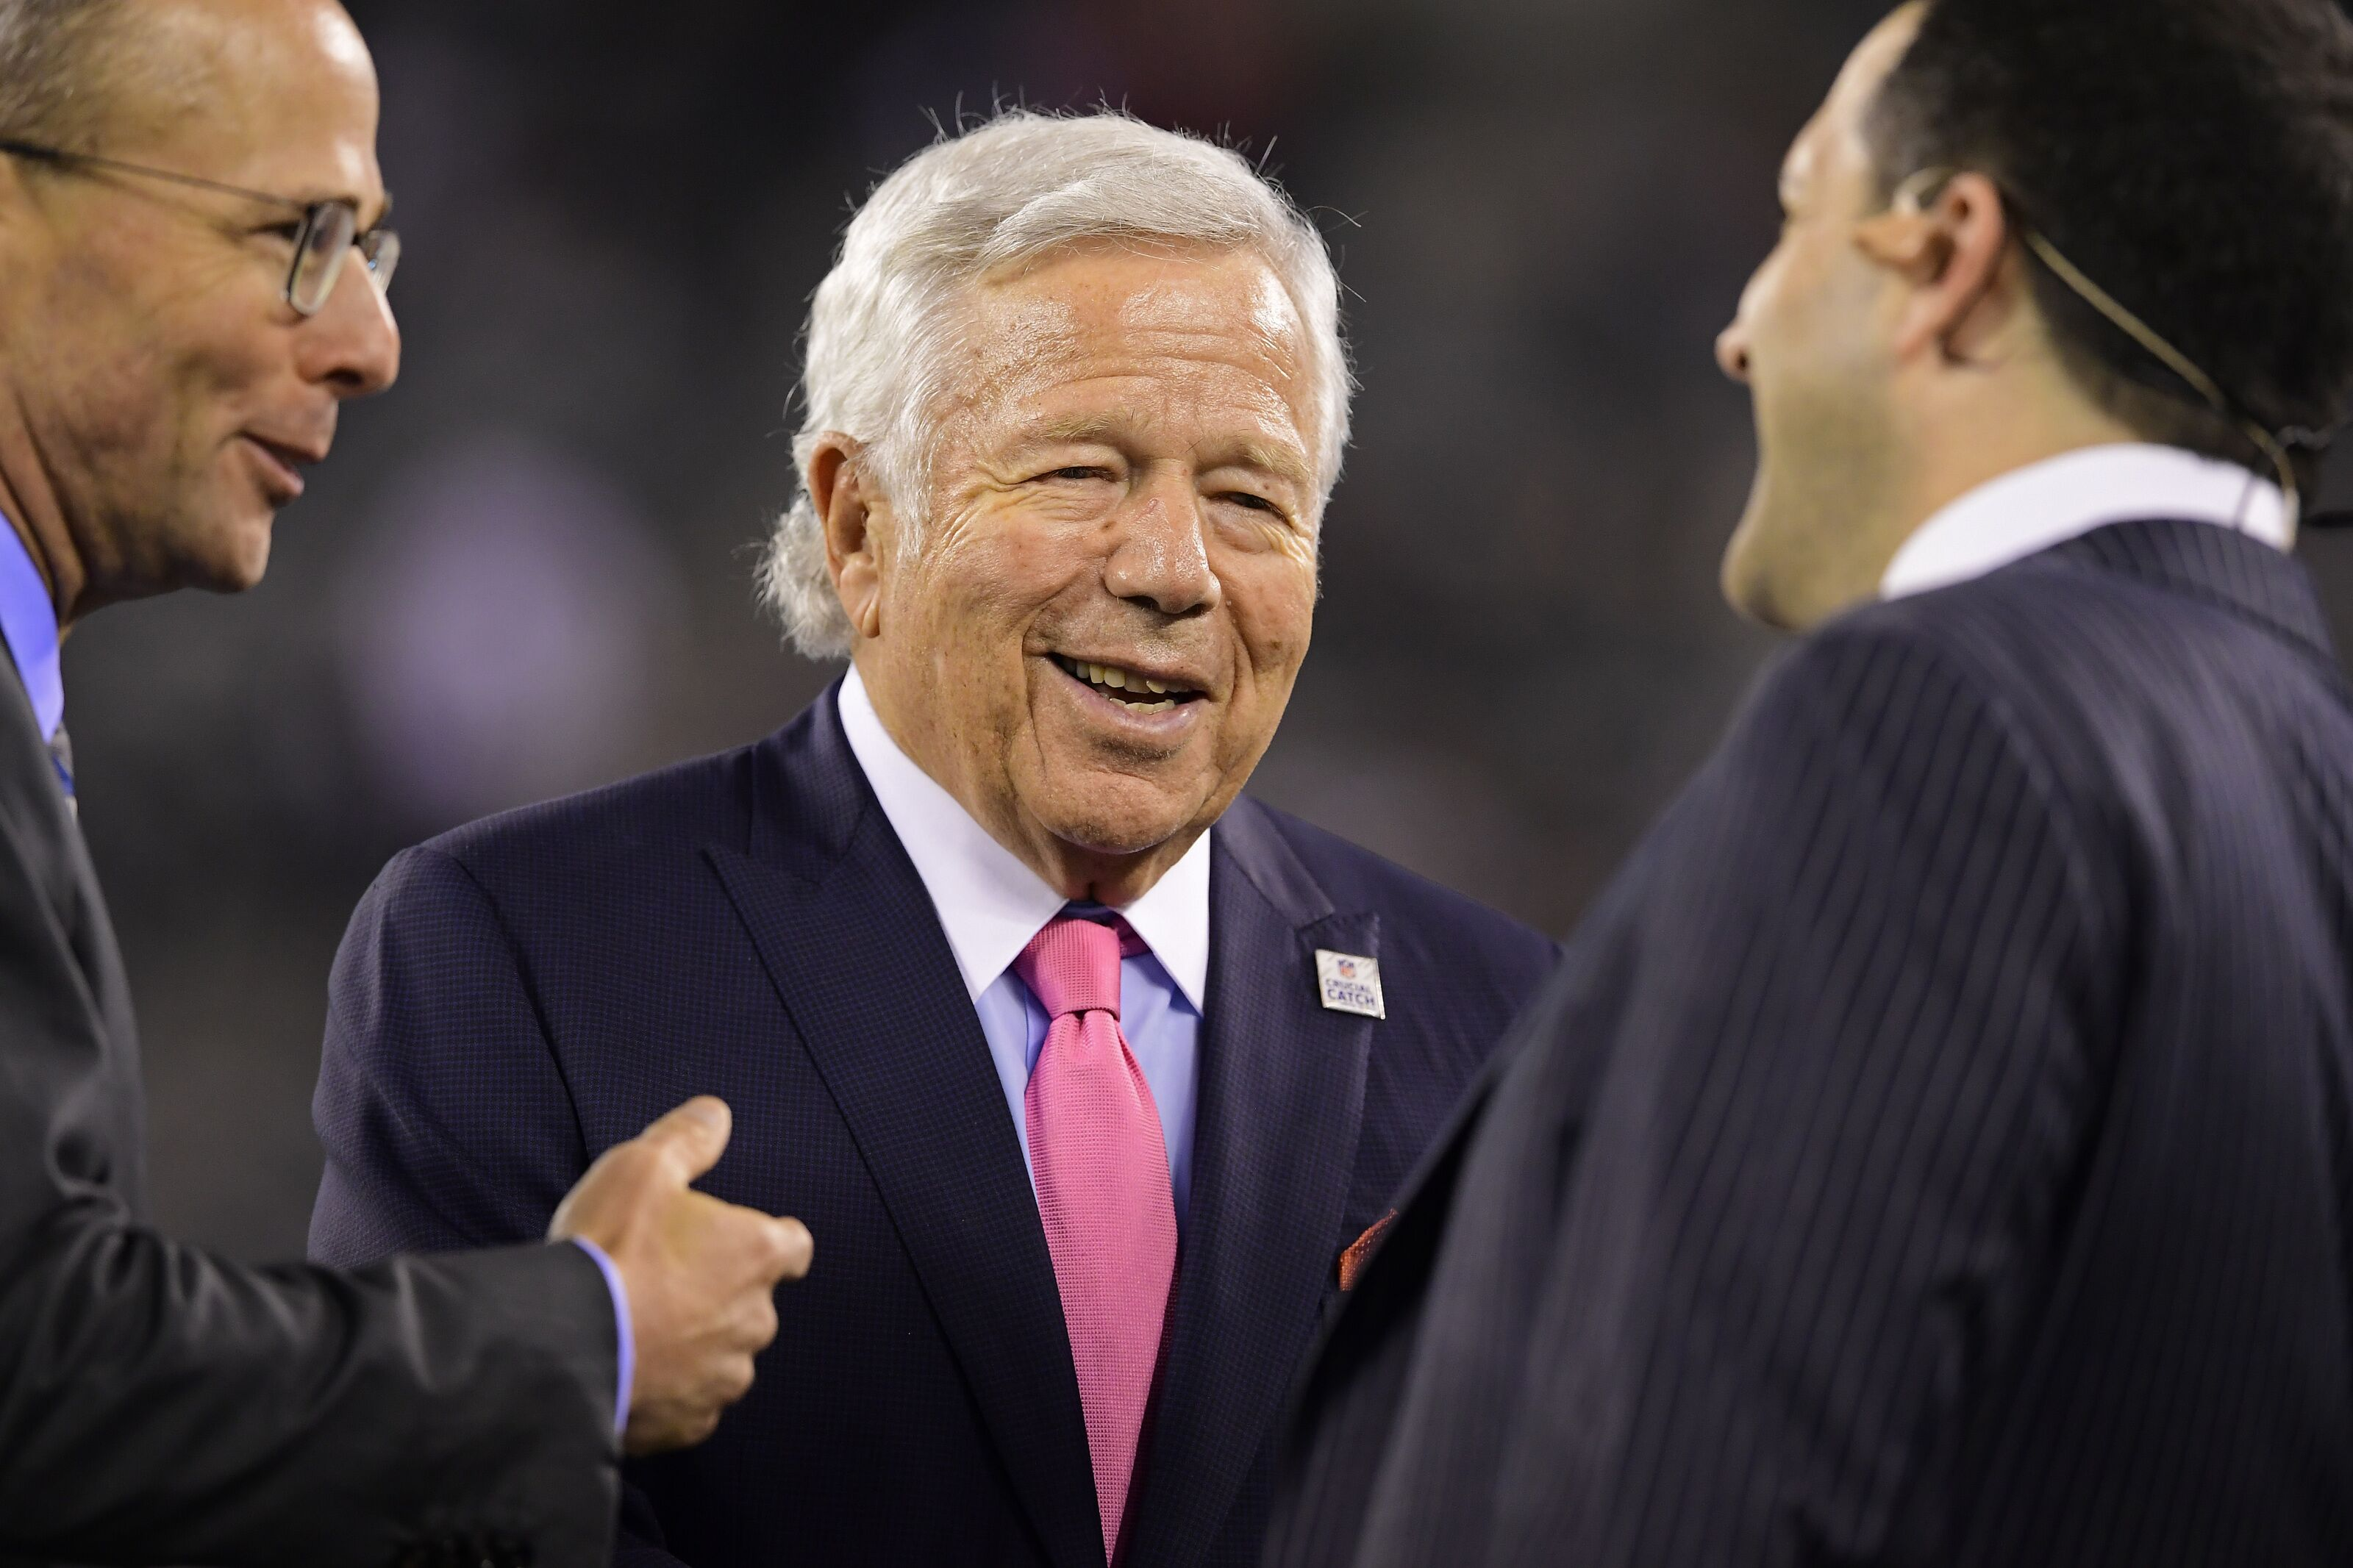 Everything you need to know about the latest Patriots' cheating allegations